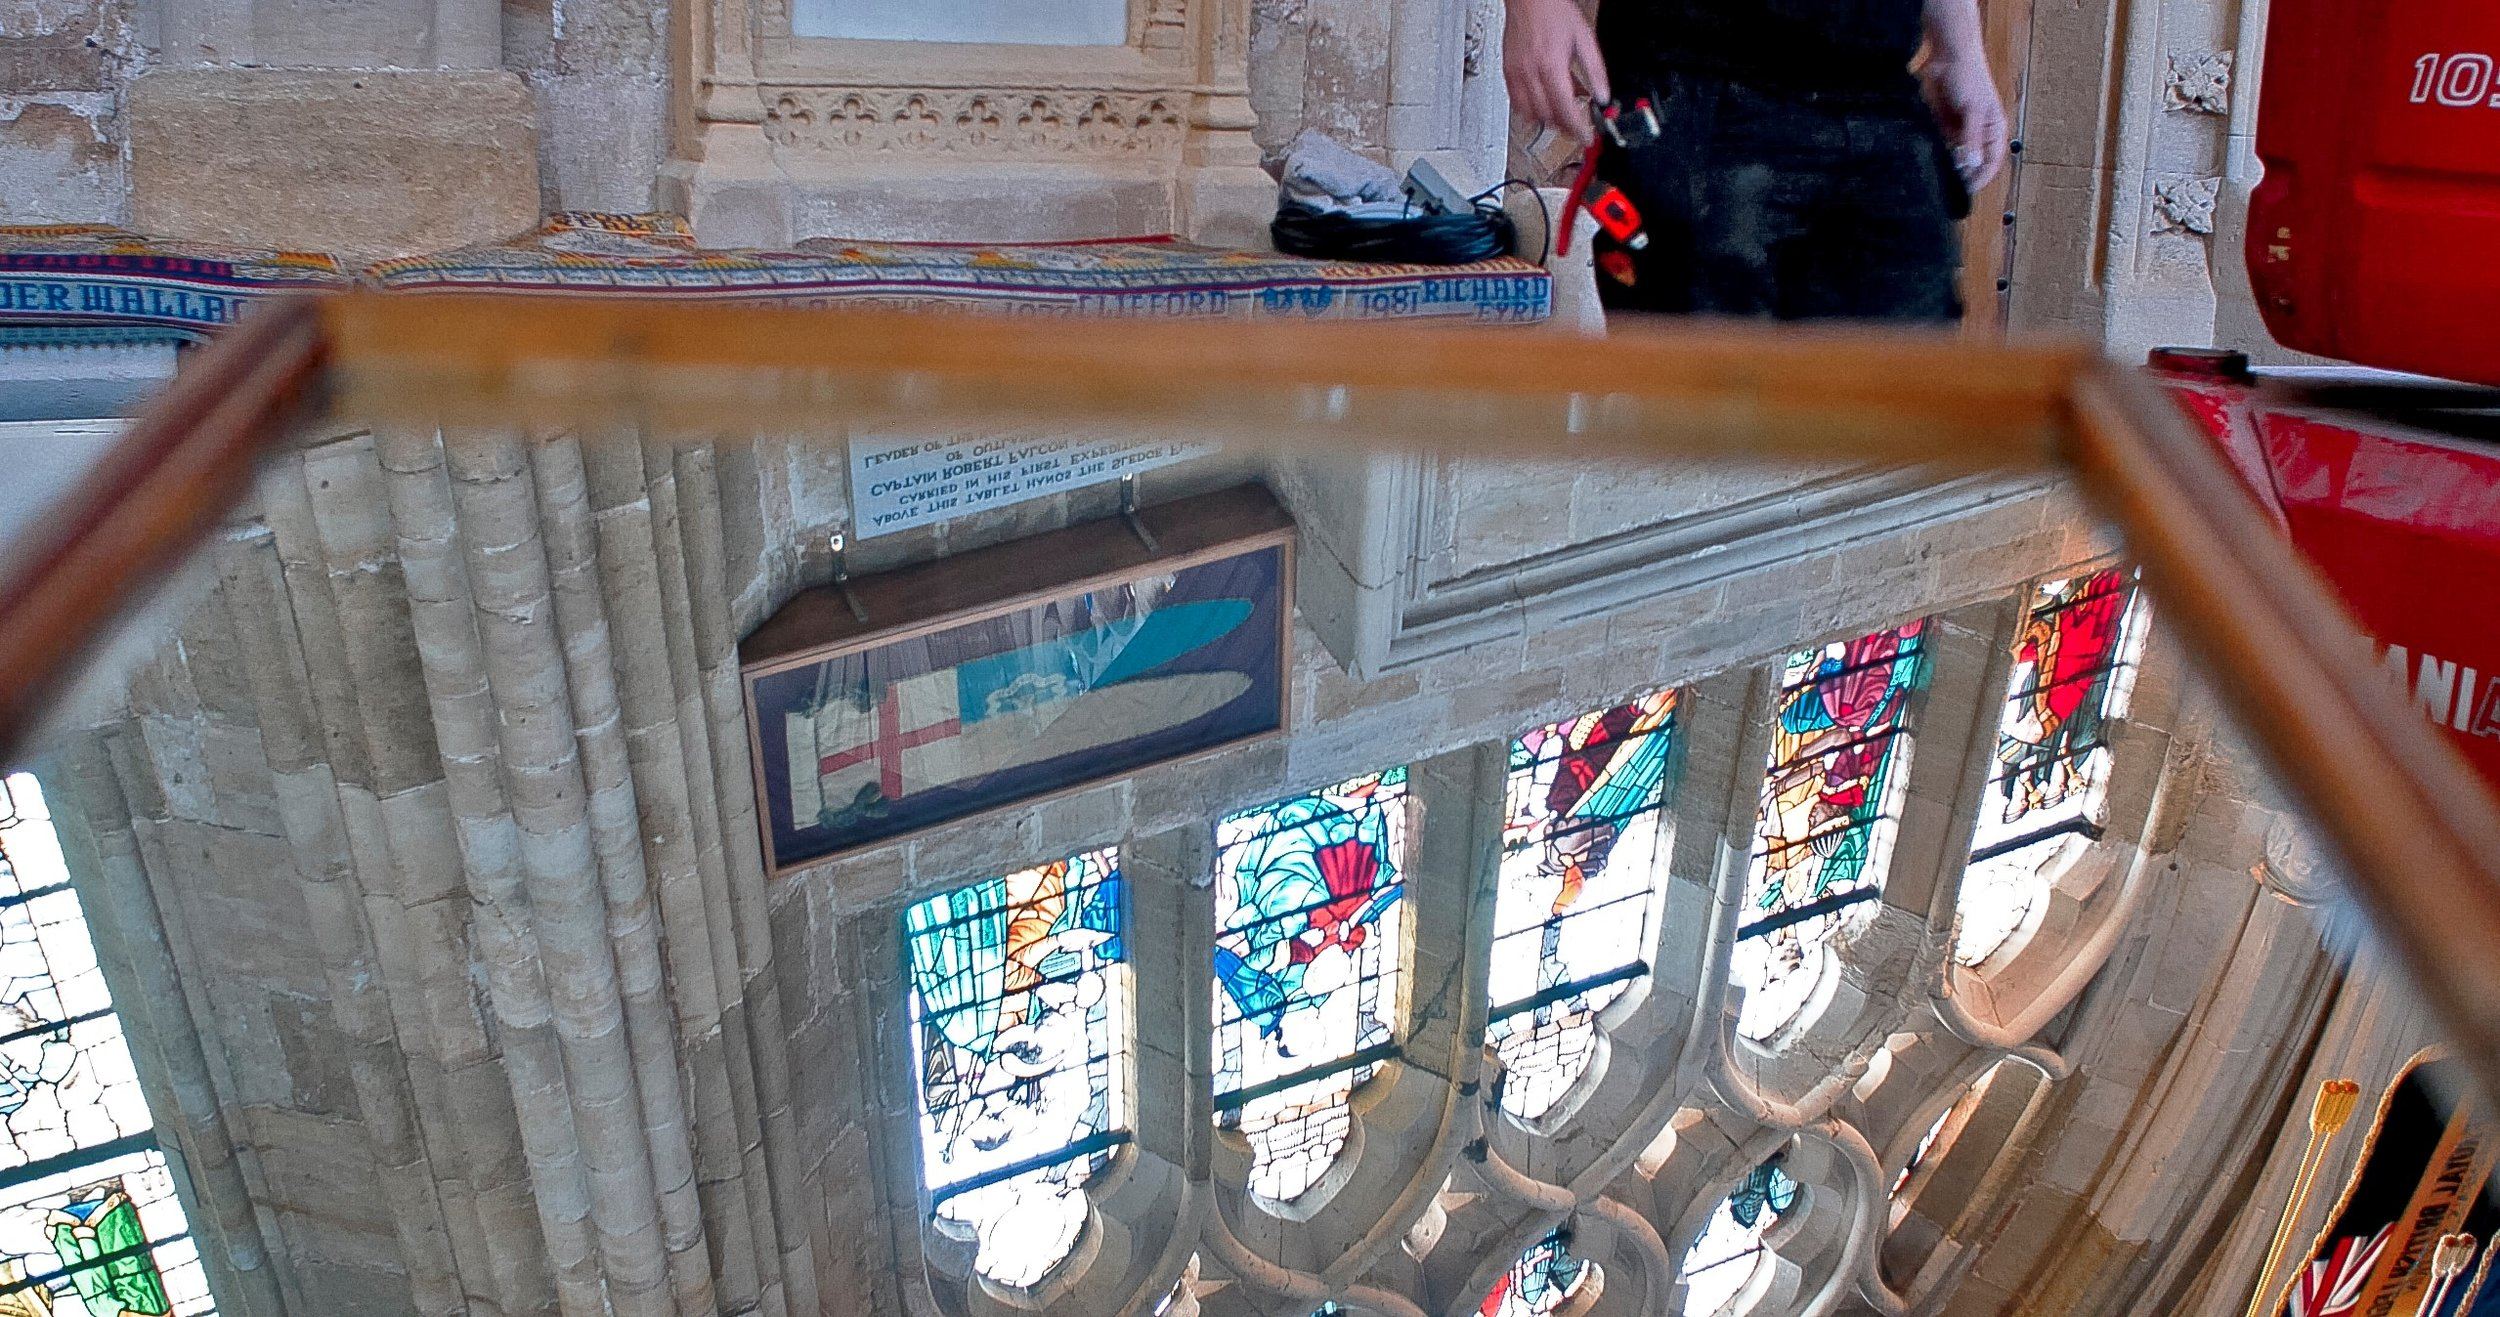 As part of their research process for the commission, Bik Van der Pol visited Exeter Cathedral